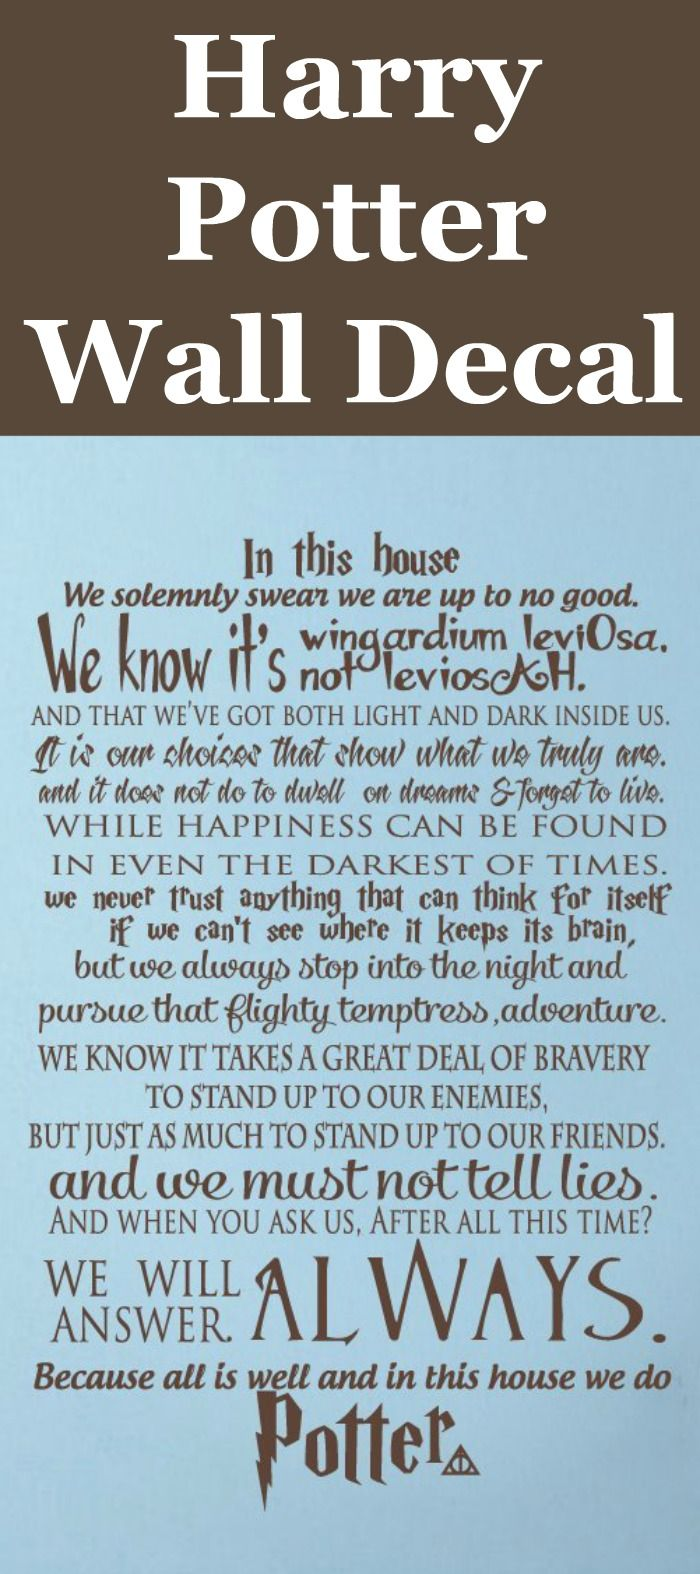 Always thats what i think when i see this harry potter vinyl thats what i think when i see this harry potter vinyl wall decal in this house we do potter available at boardman printing amipublicfo Choice Image